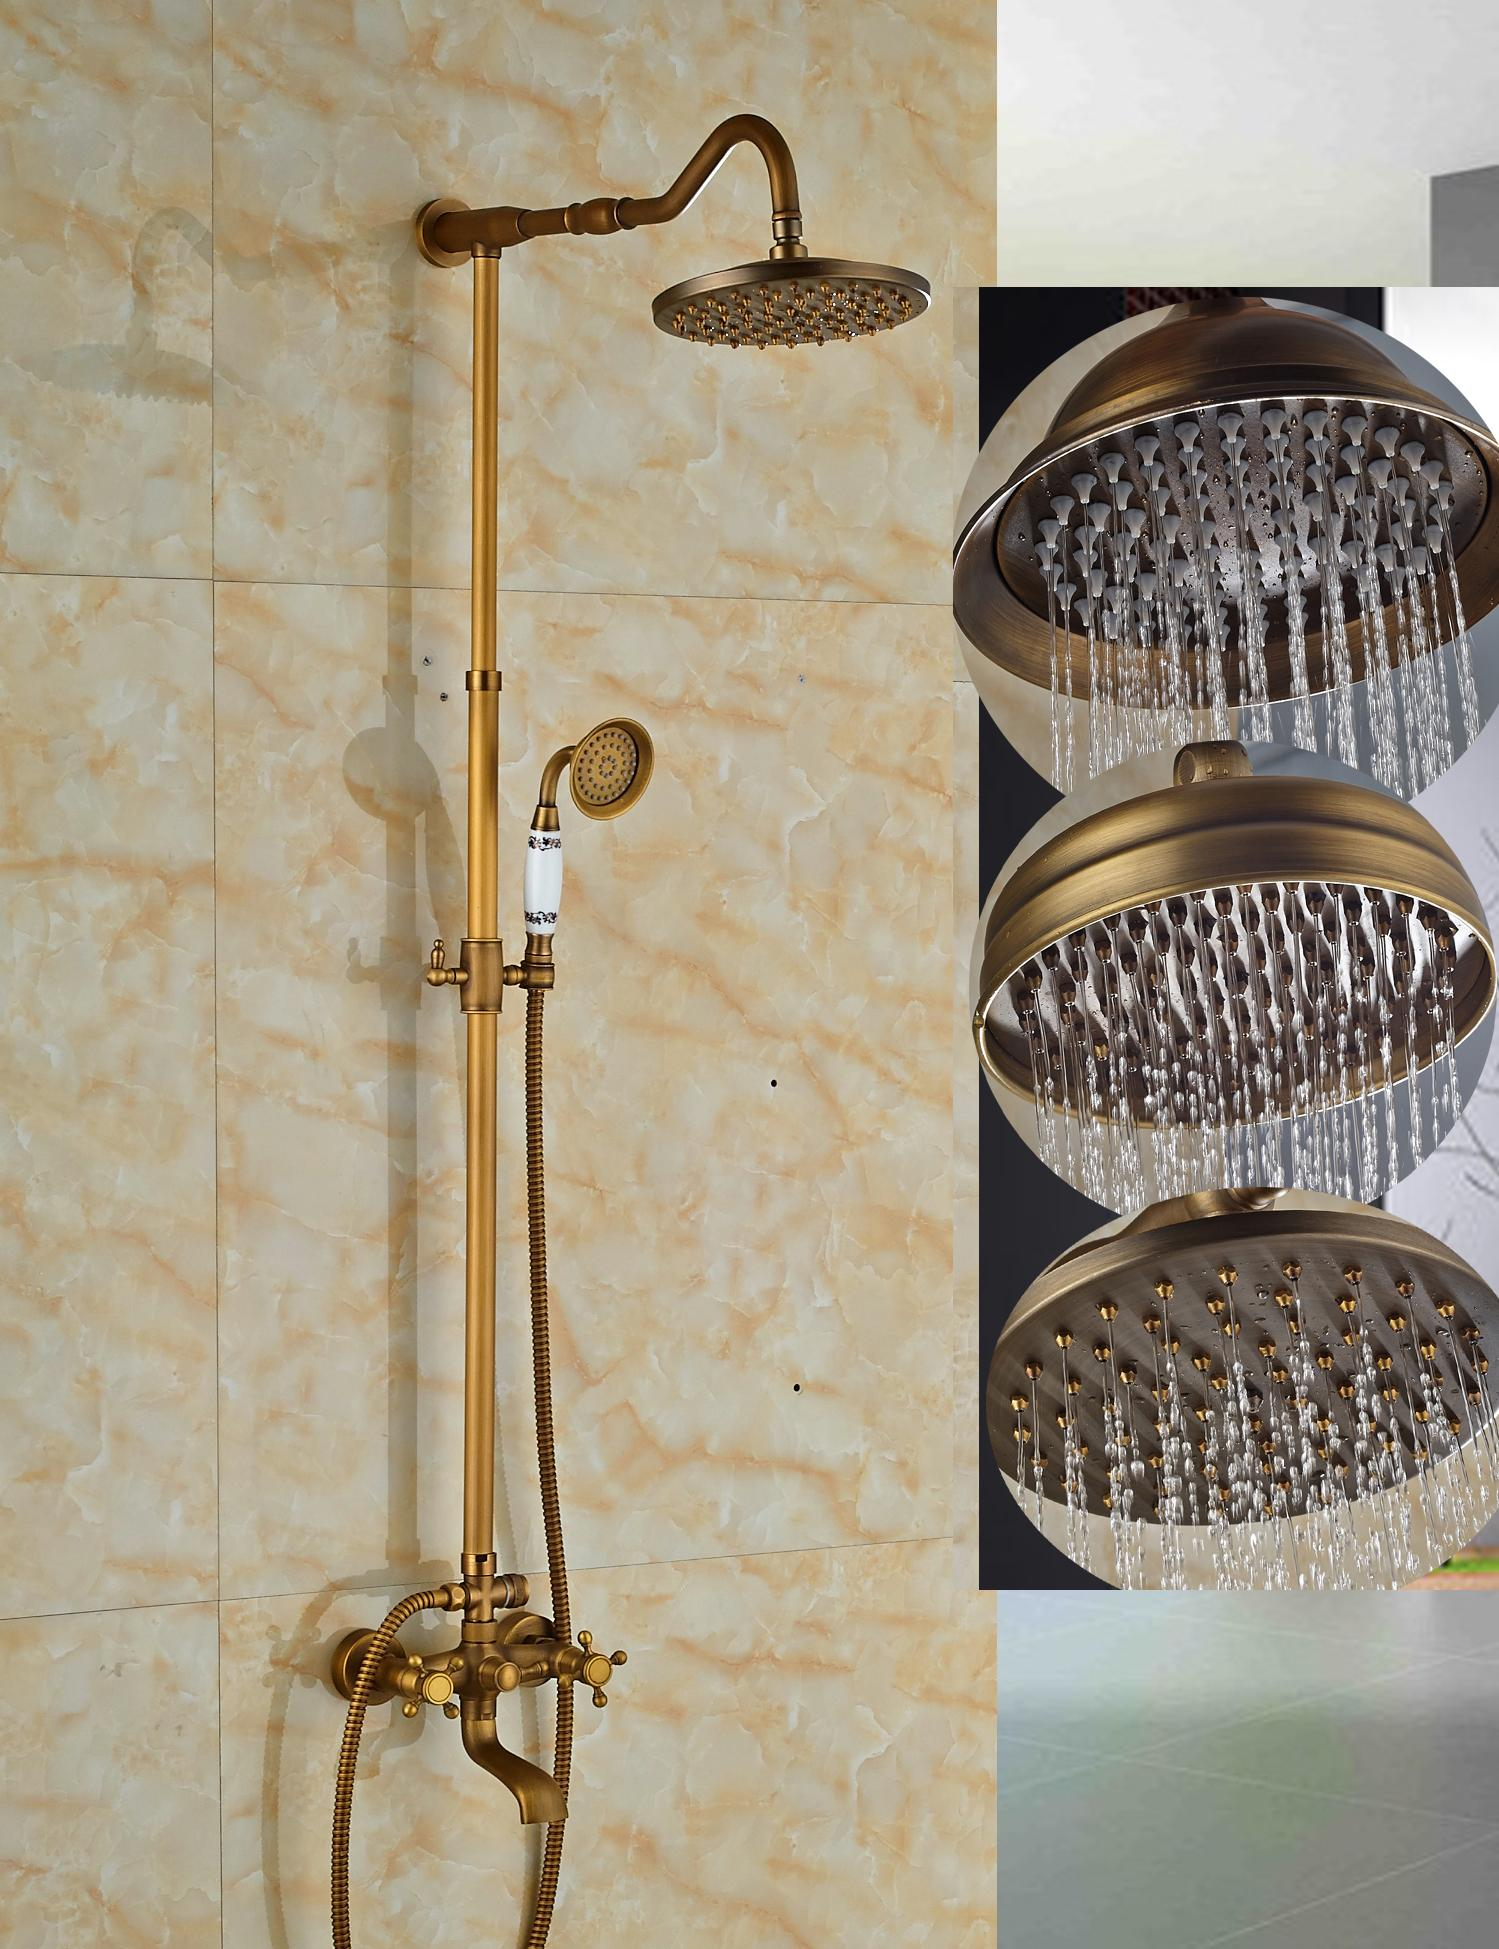 2019 Wholesale And Retail Antique Brass Rain Shower Faucet Wall Mounted 8 Sprayer Tub Spout Dual Cross Handles From Gonglangno1 180 91 Dhgate Com